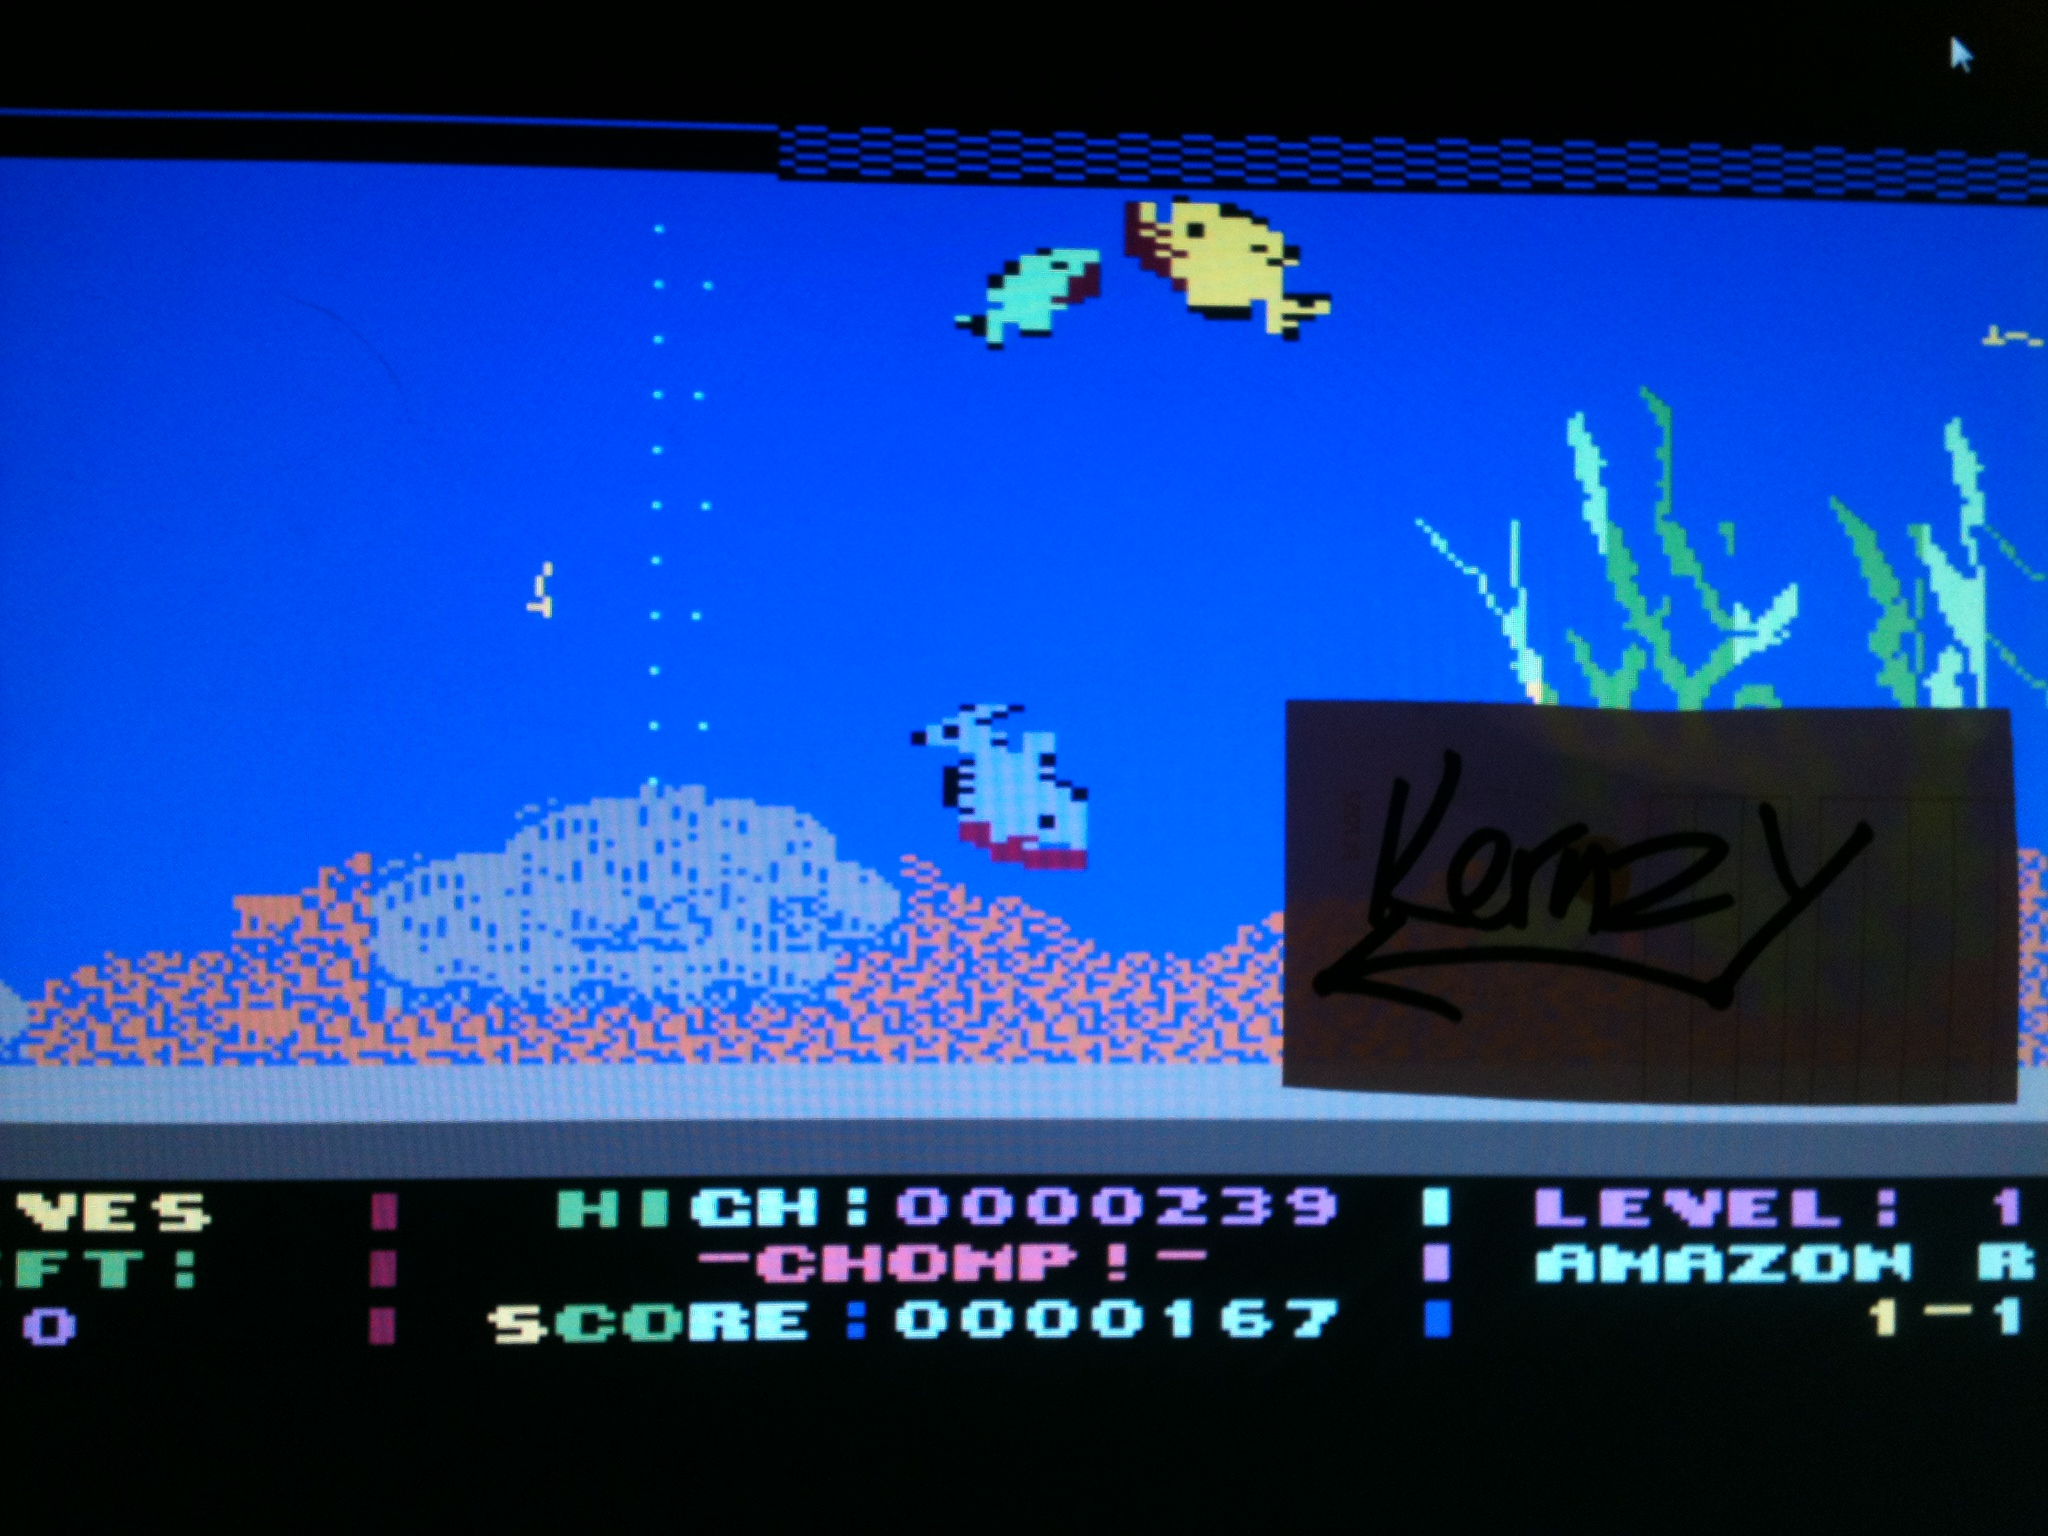 kernzy: Chomp! [Cosmi 1989] (Commodore 64 Emulated) 167 points on 2015-05-08 19:24:07